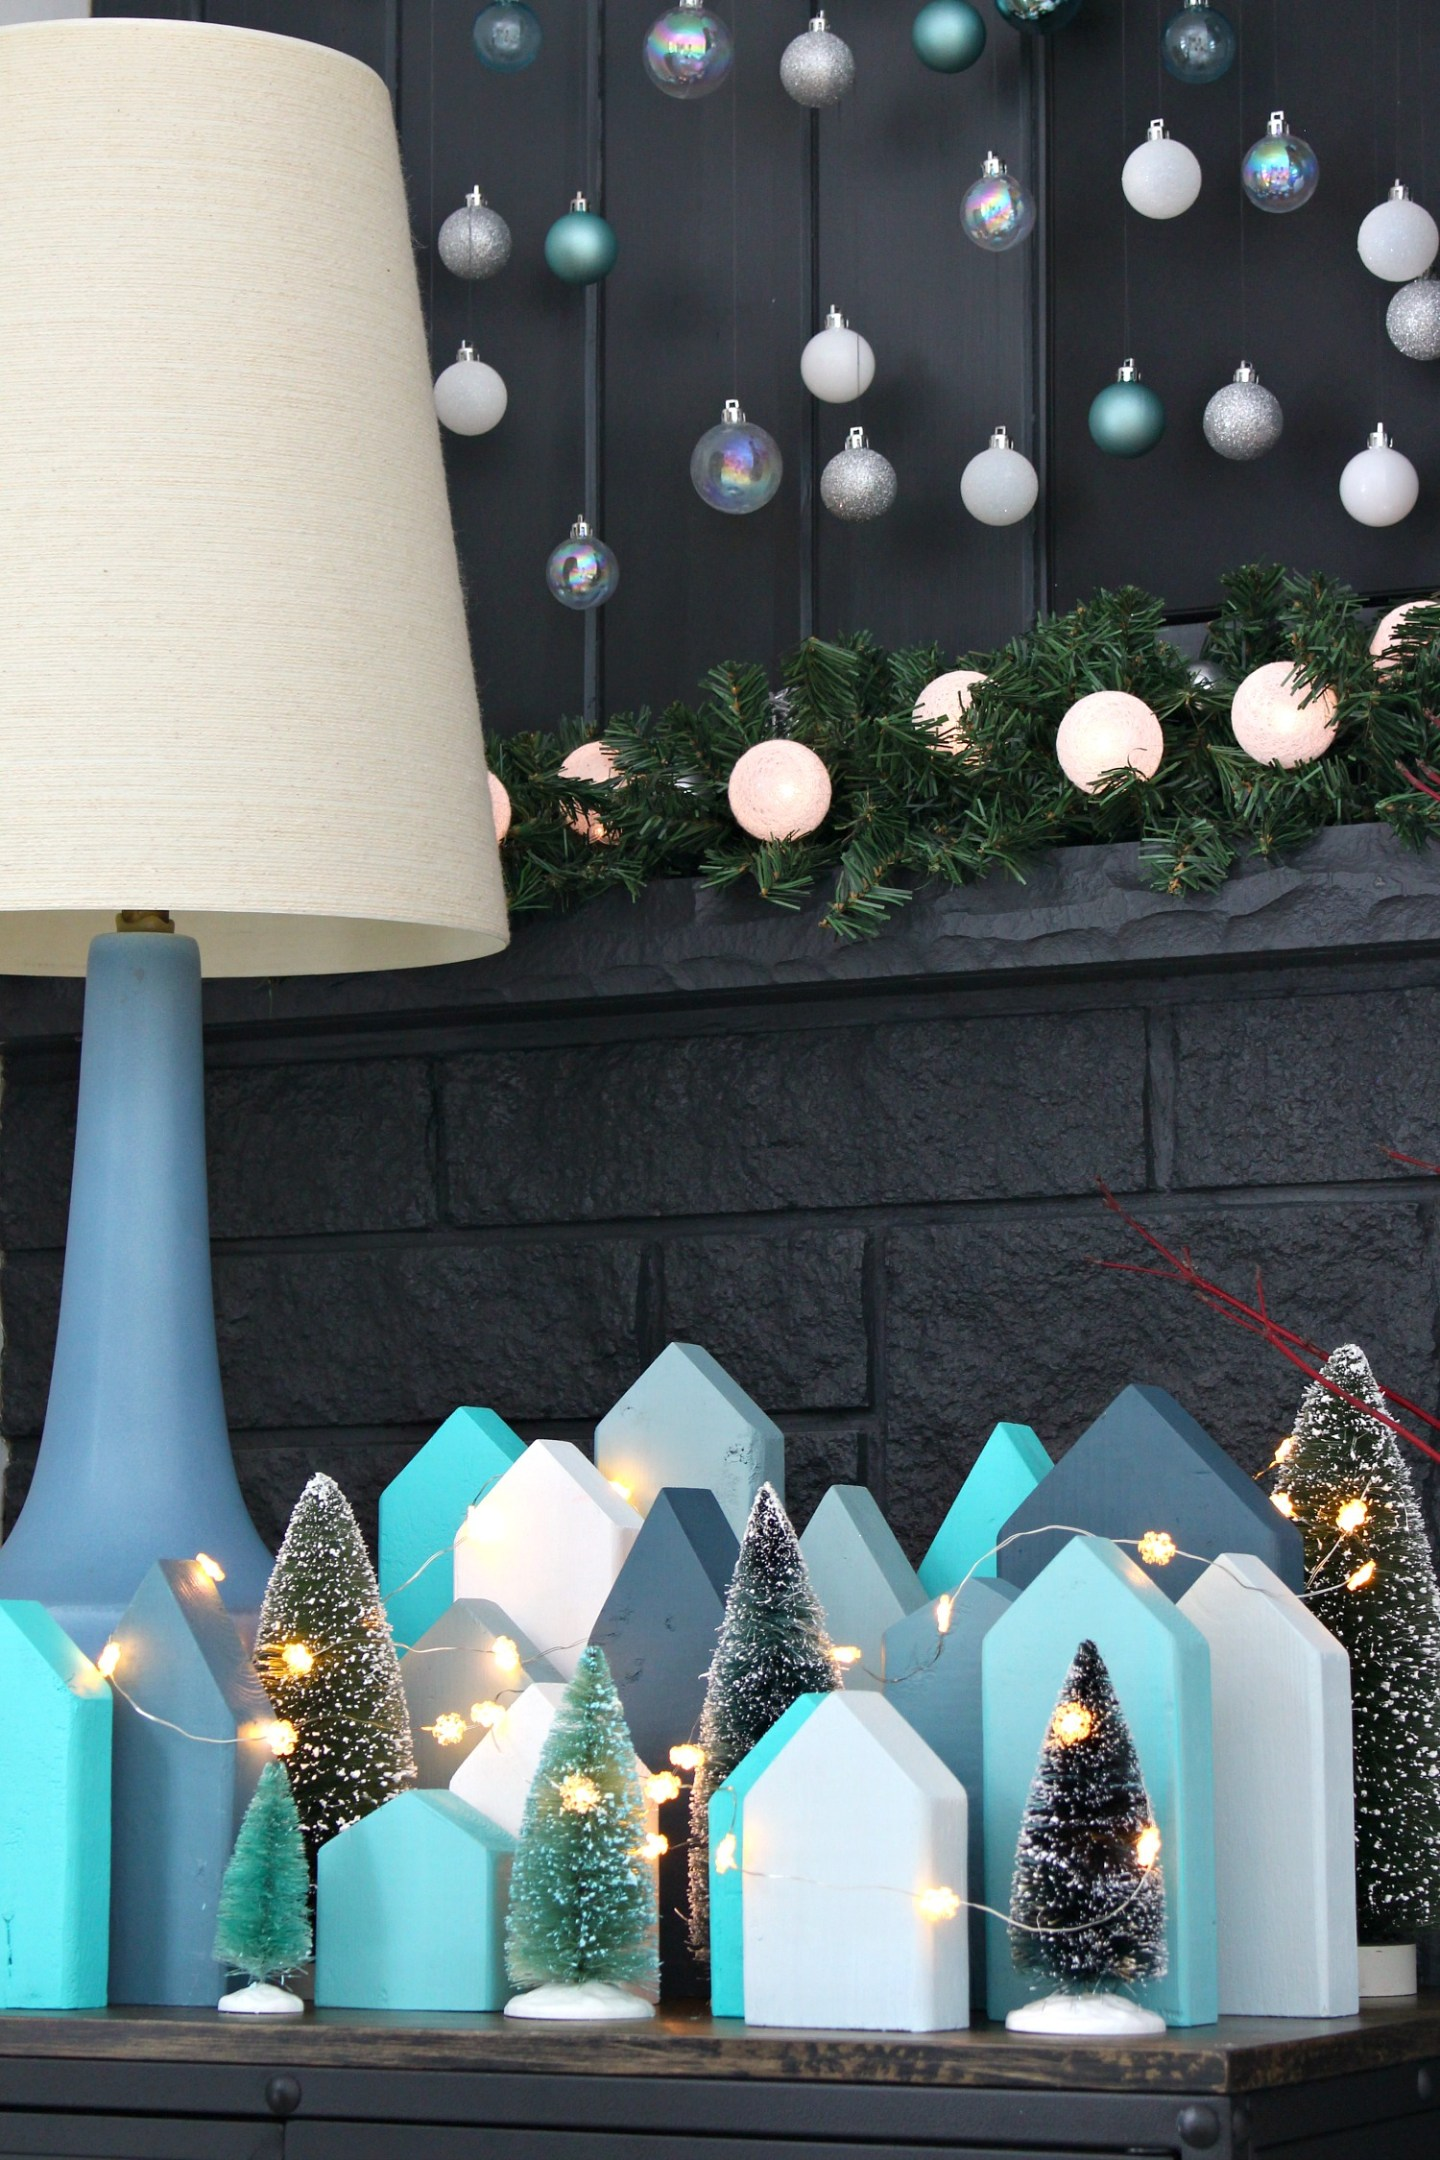 Learn How to Make This DIY Holiday Village